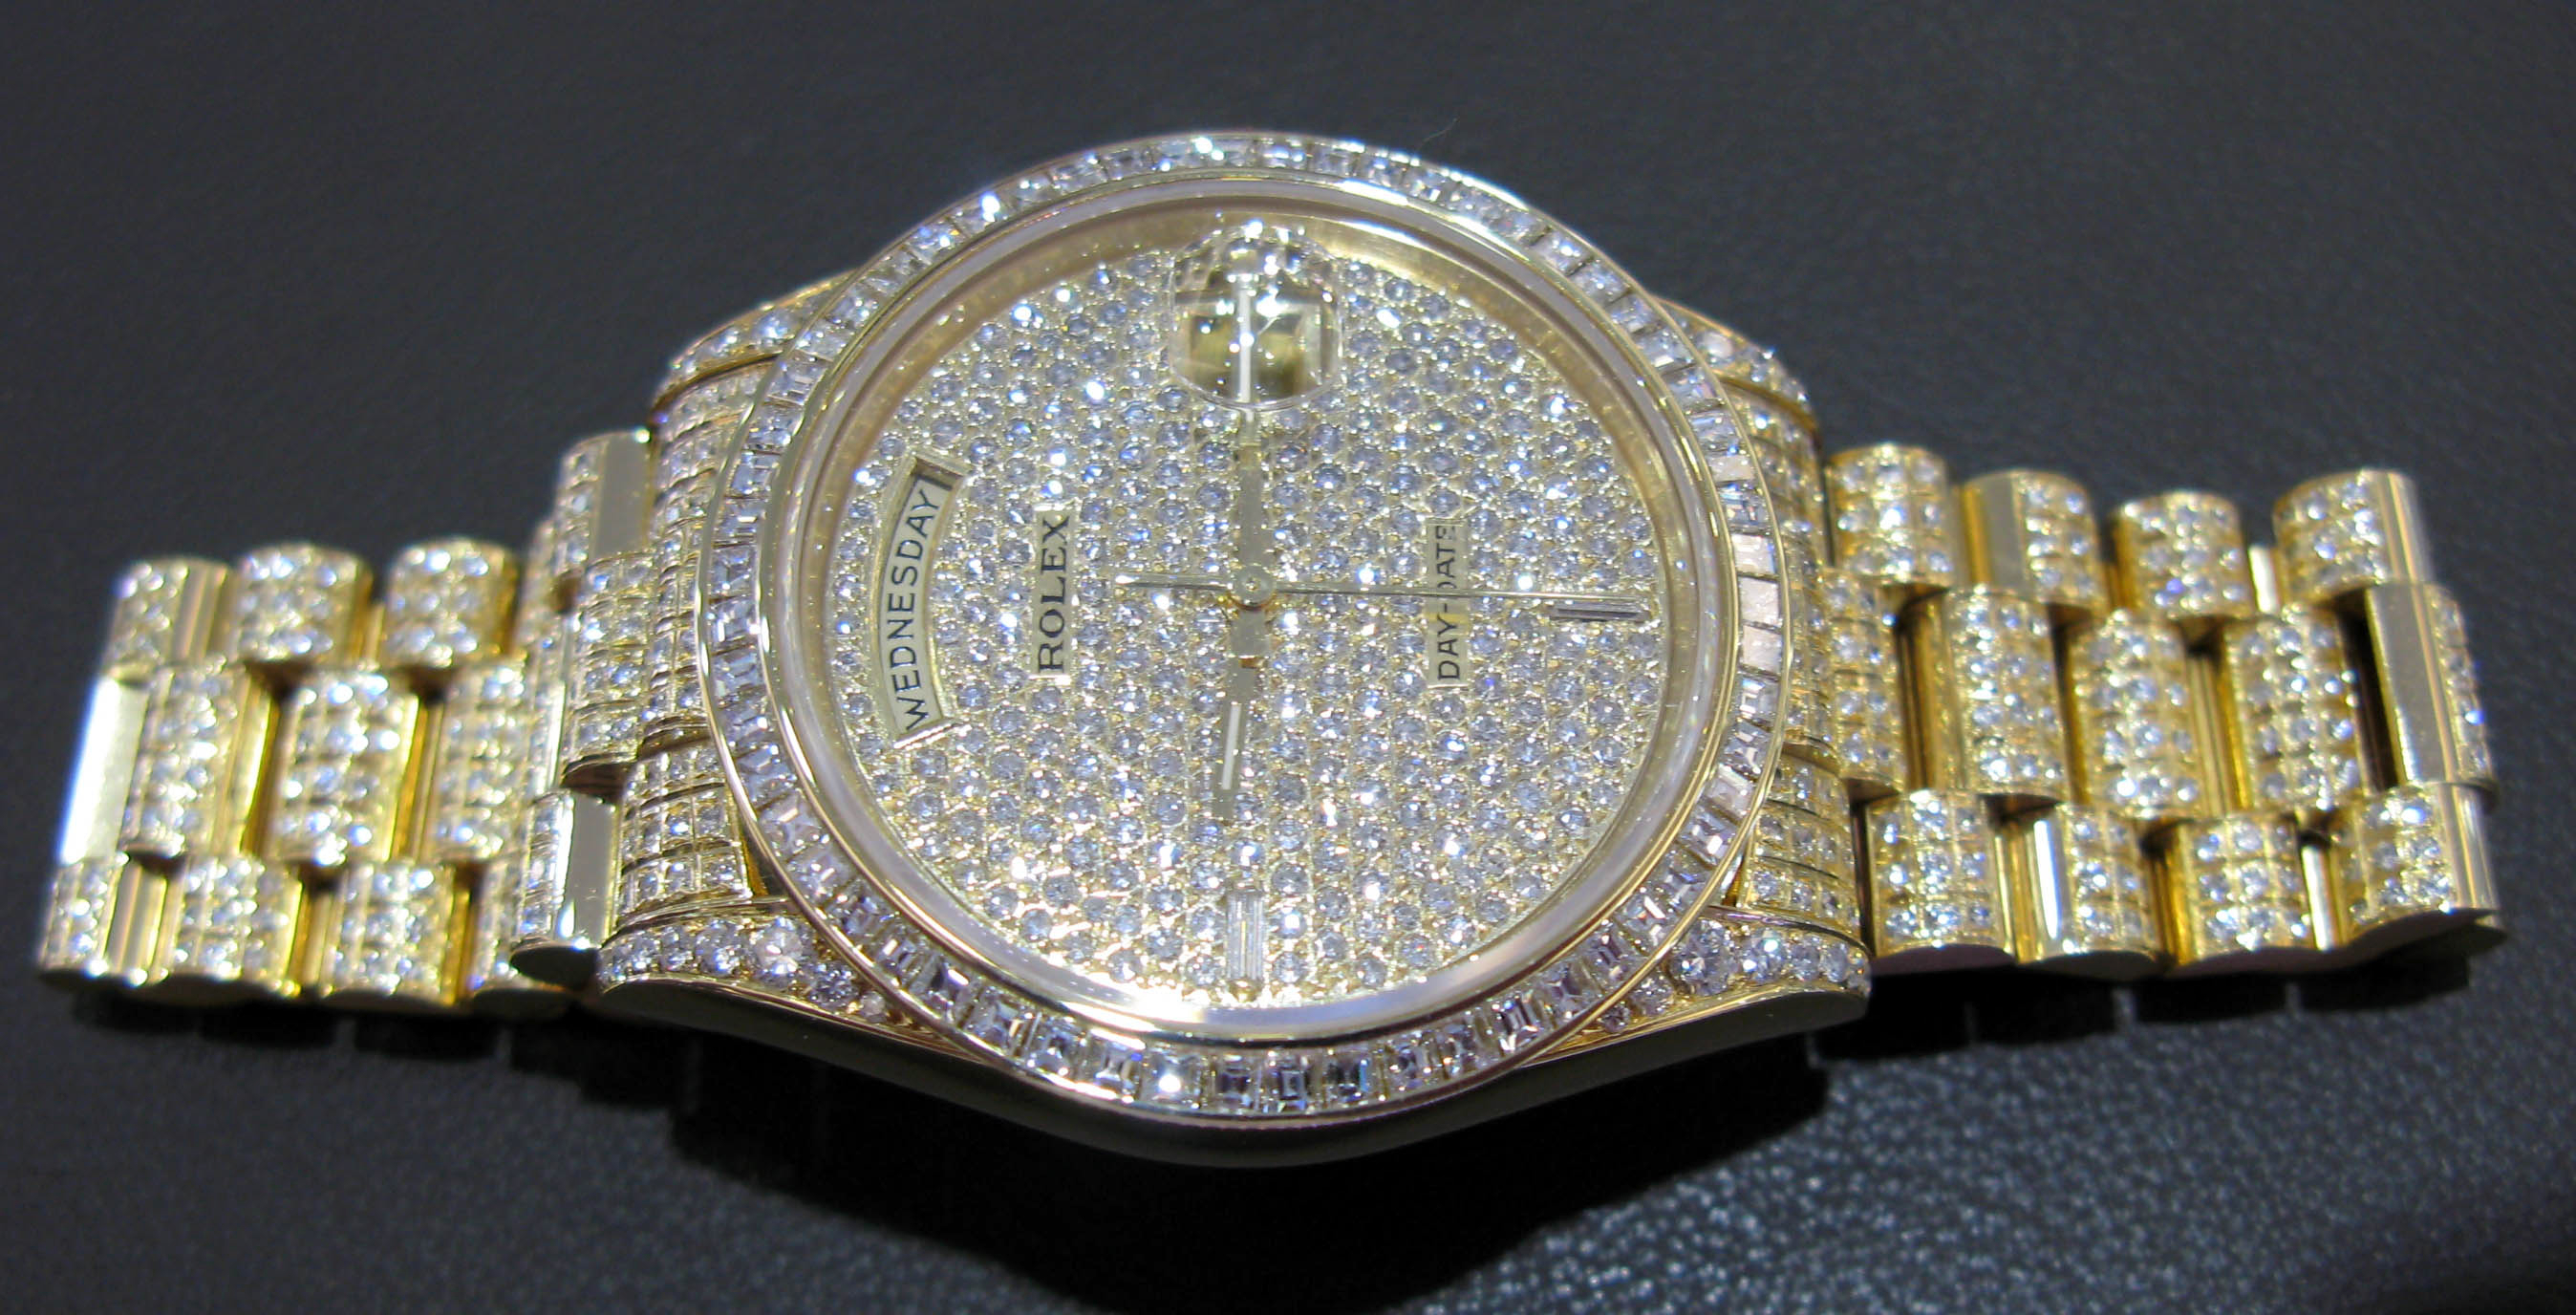 Things you didn't know about Rolex